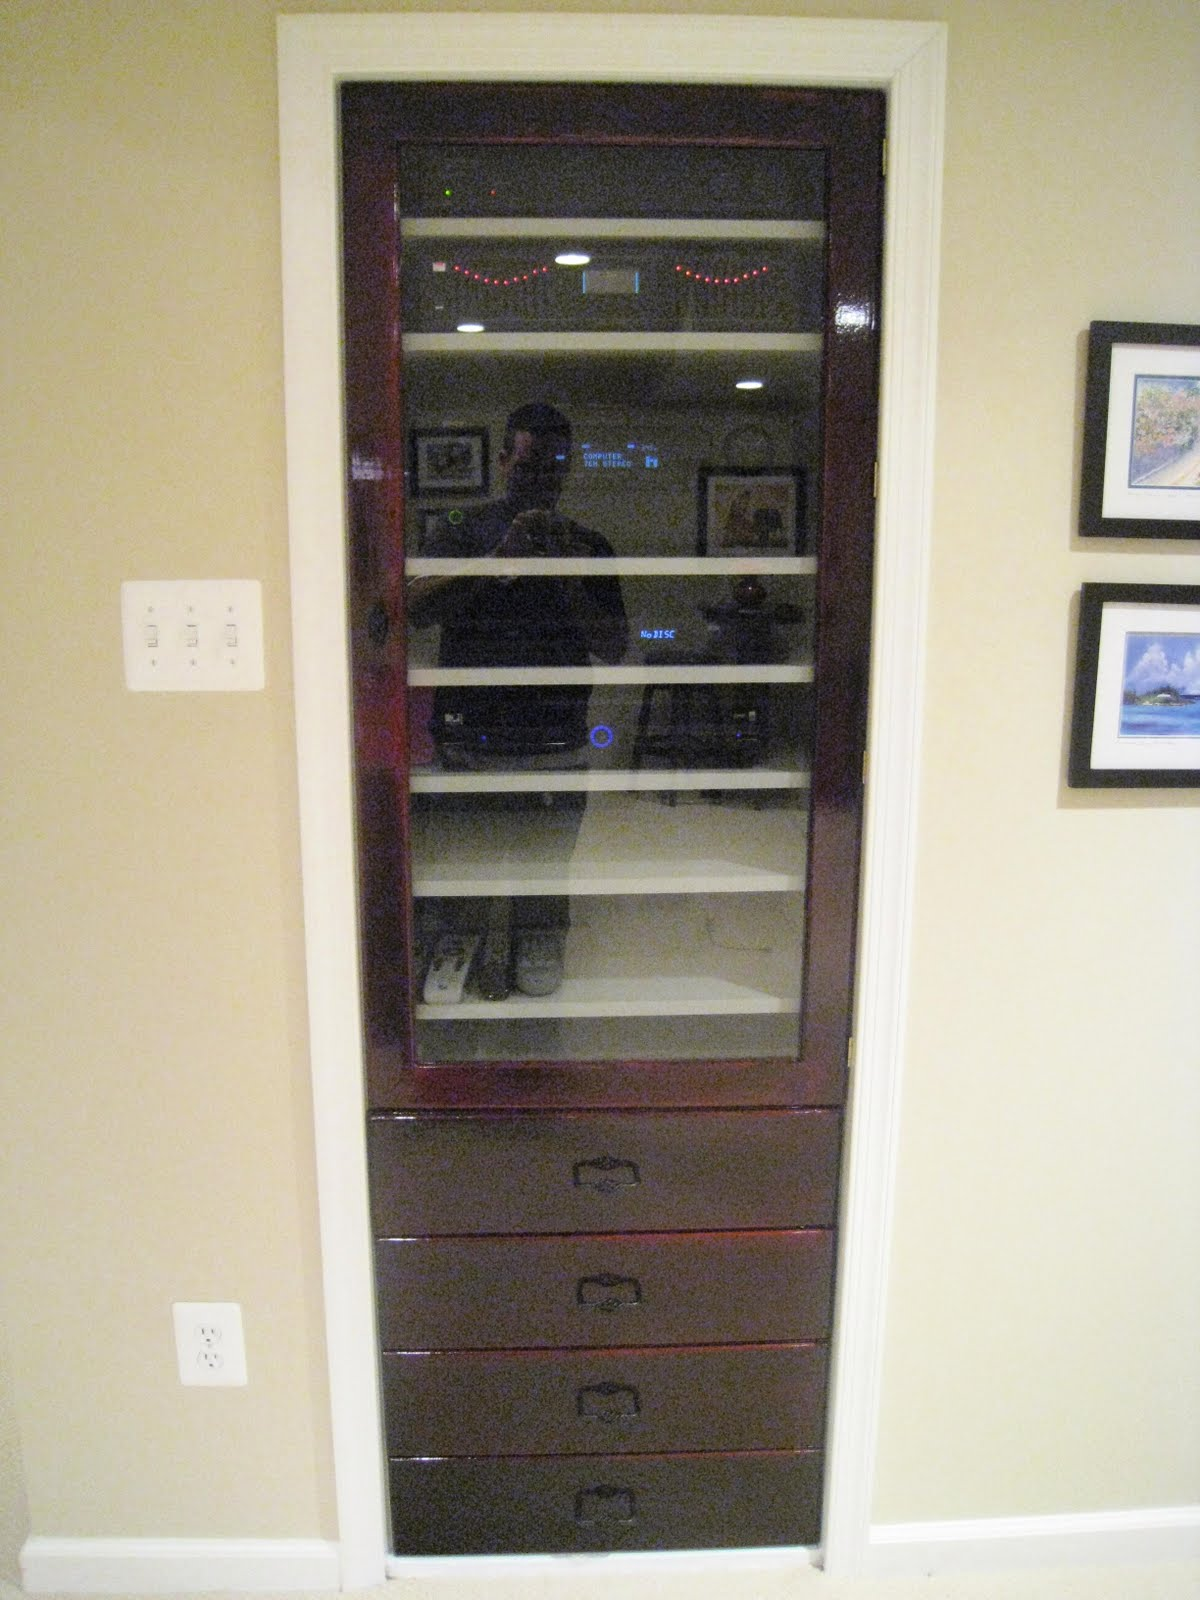 Attractive Component Rack For Home Theater Equipment